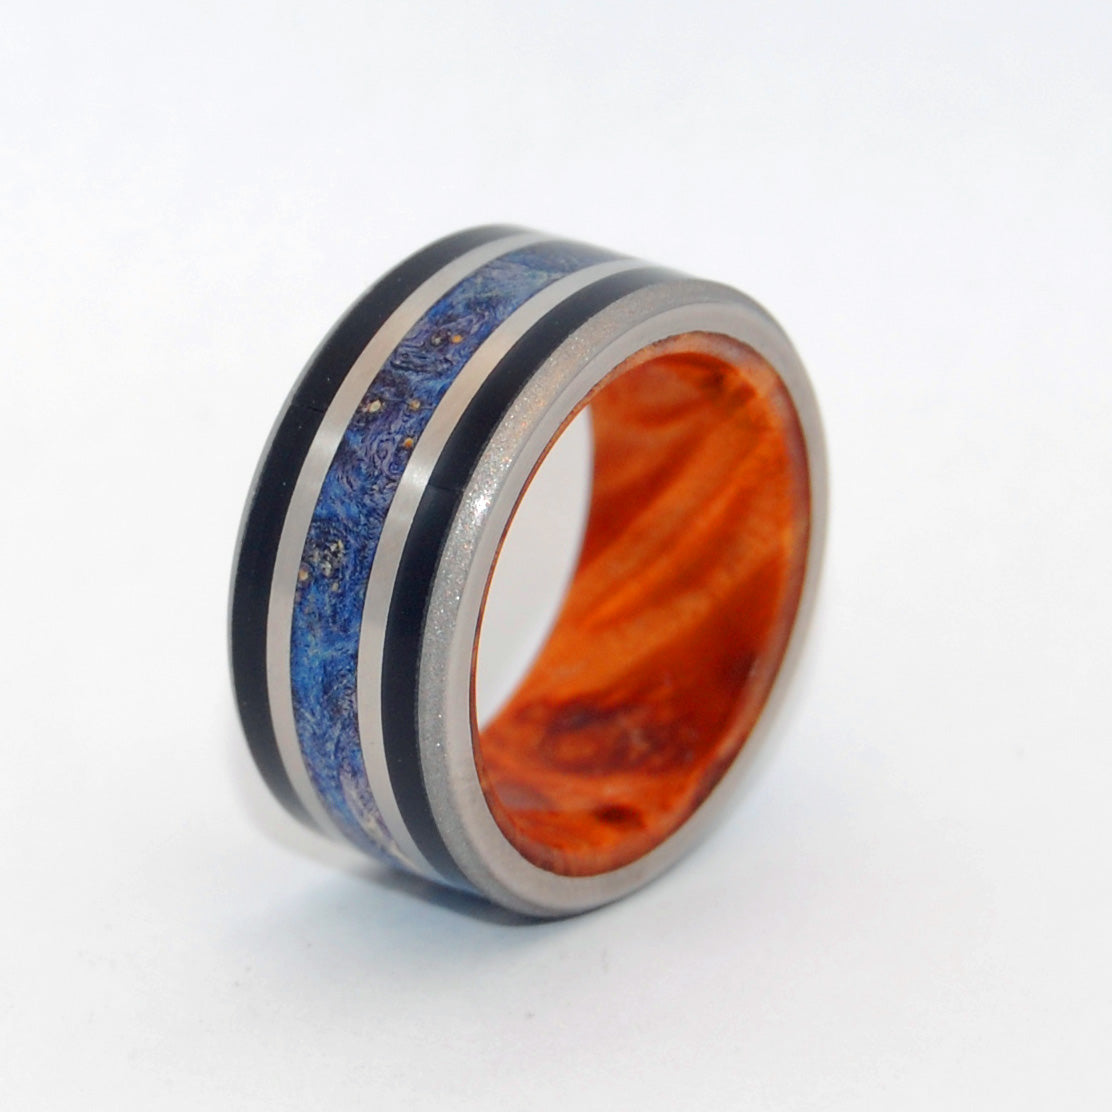 Triumph - A Masterpiece | Handcrafted Titanium Wedding Ring - Minter and Richter Designs